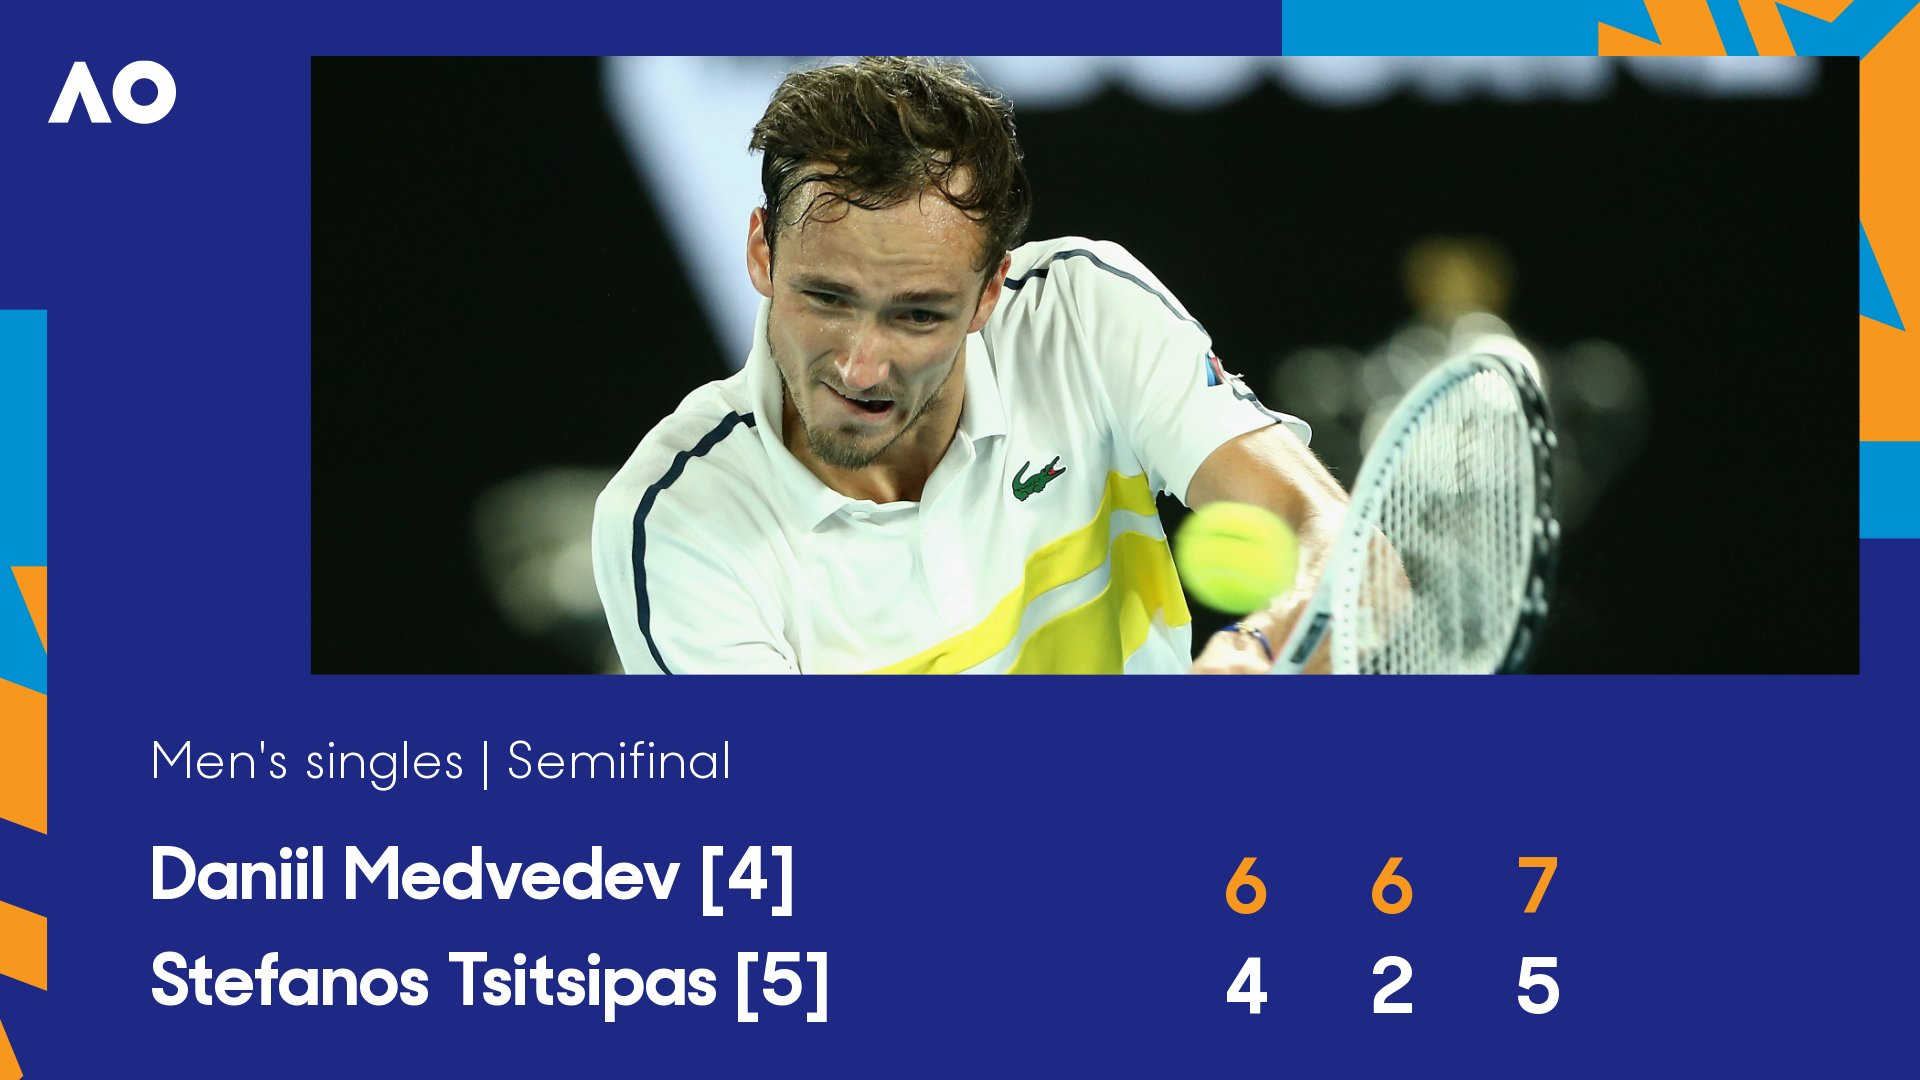 Result graphic of Daniil Medvedev defeating Stefanos Tsitsipas 6-4 6-2 7-5 in the semifinal of the 2021 Australian Open.